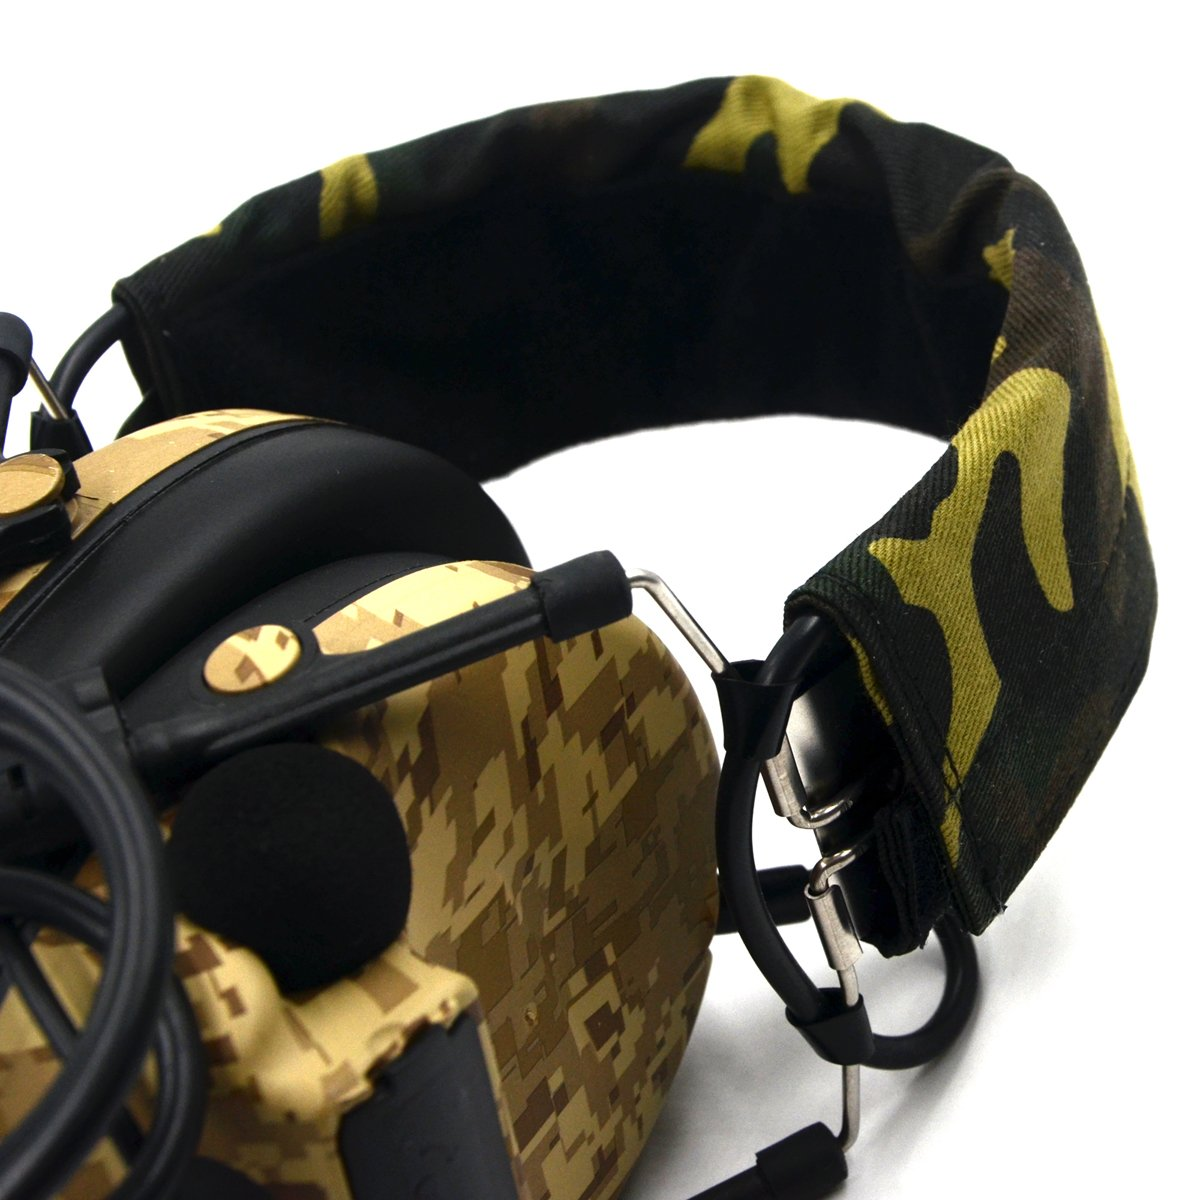 Electronic Earmuff Sport Hearing Protector for Hunting & Shooting, Sand Color by Dolphin (Image #4)